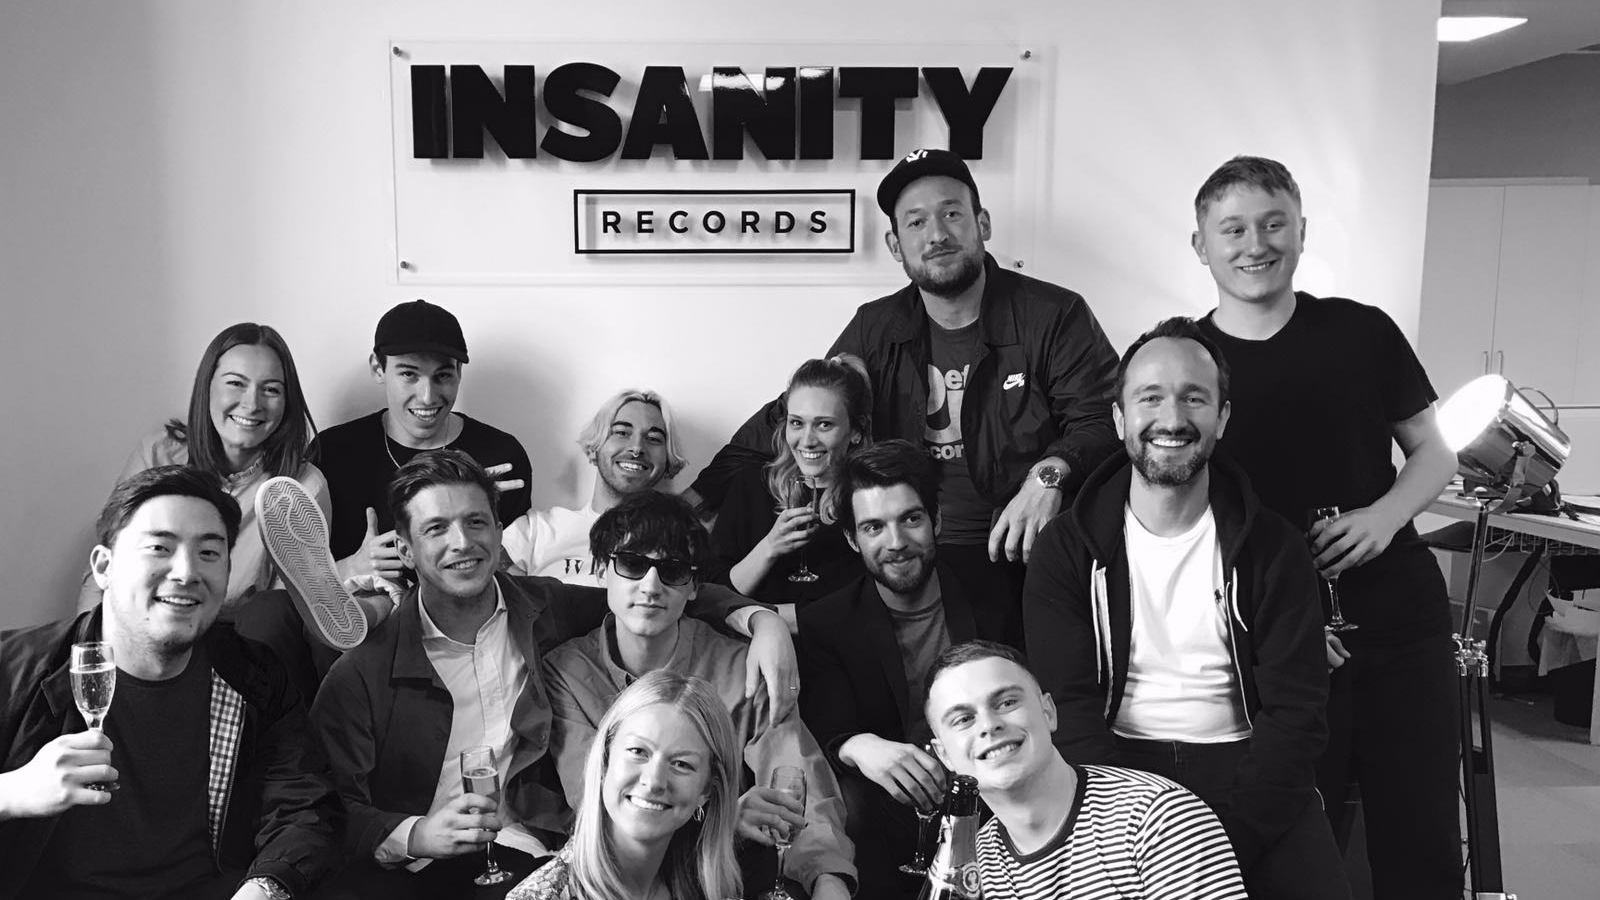 Bad Sounds join the Insanity Records family